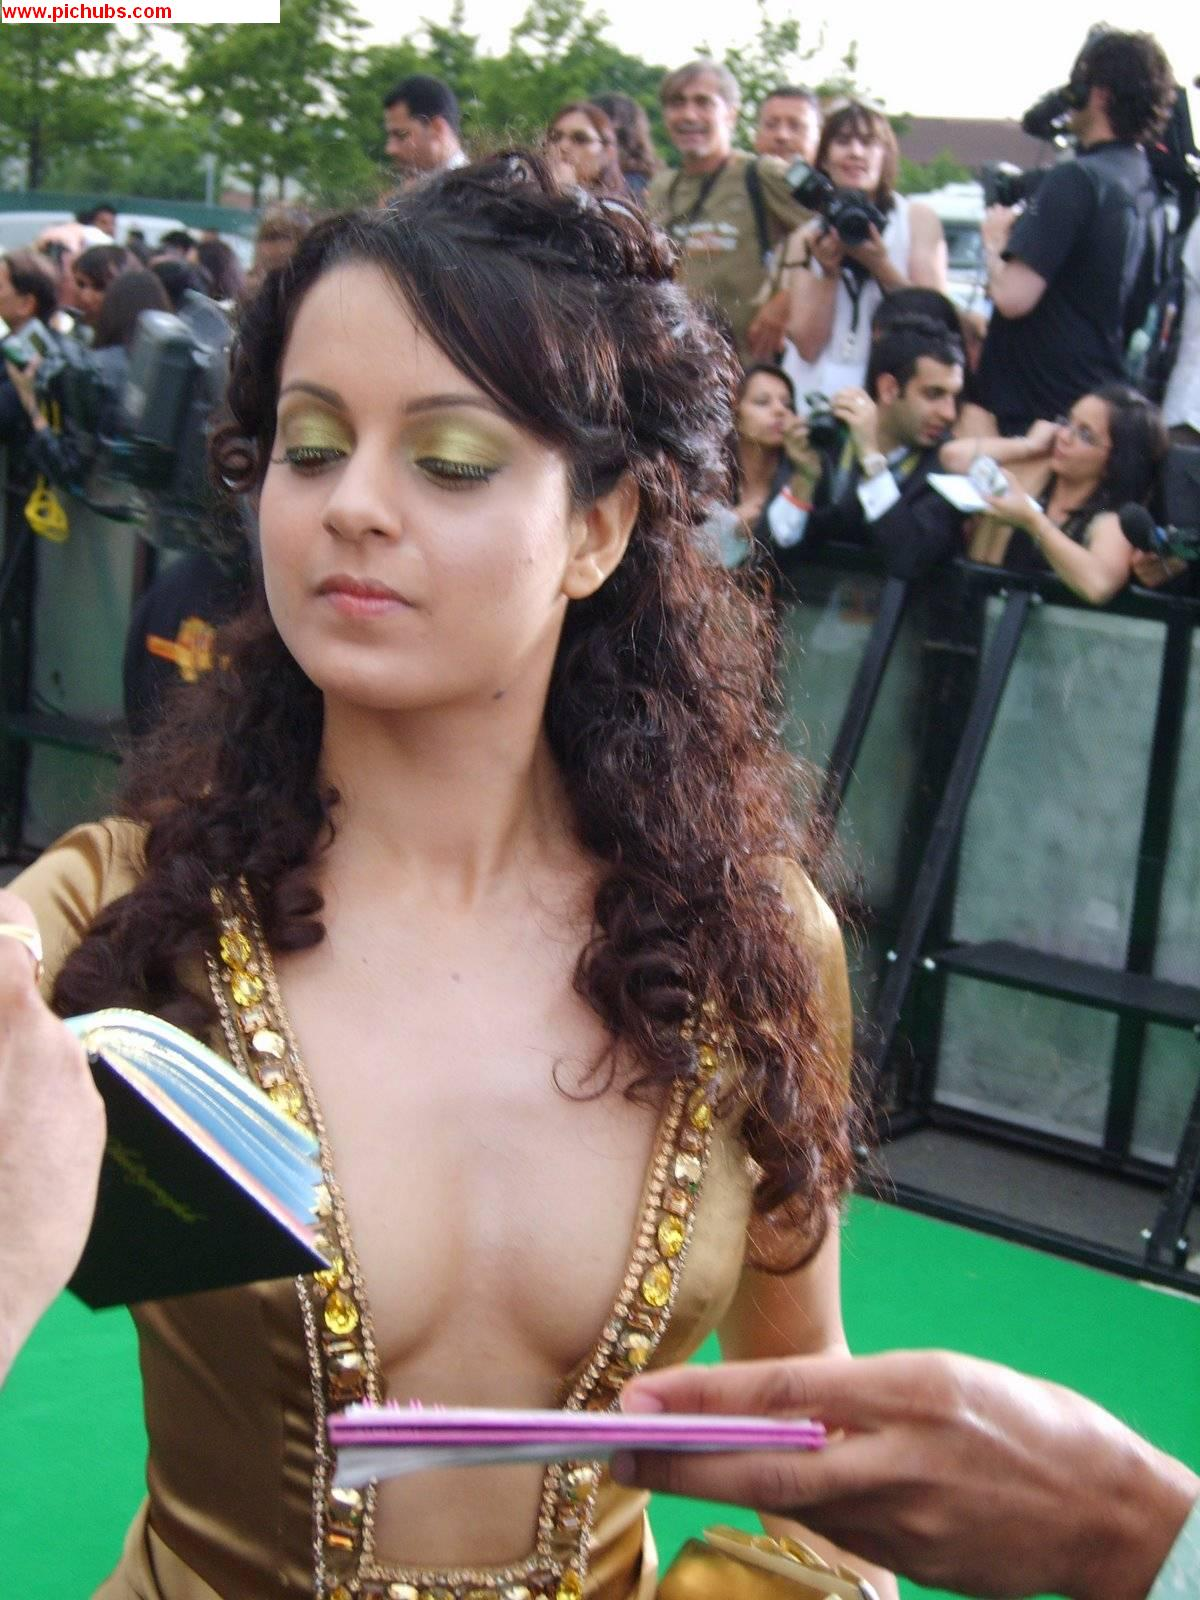 Kangana Ranaut Wearing No bra! Both Half Boobs & Nipple Visible